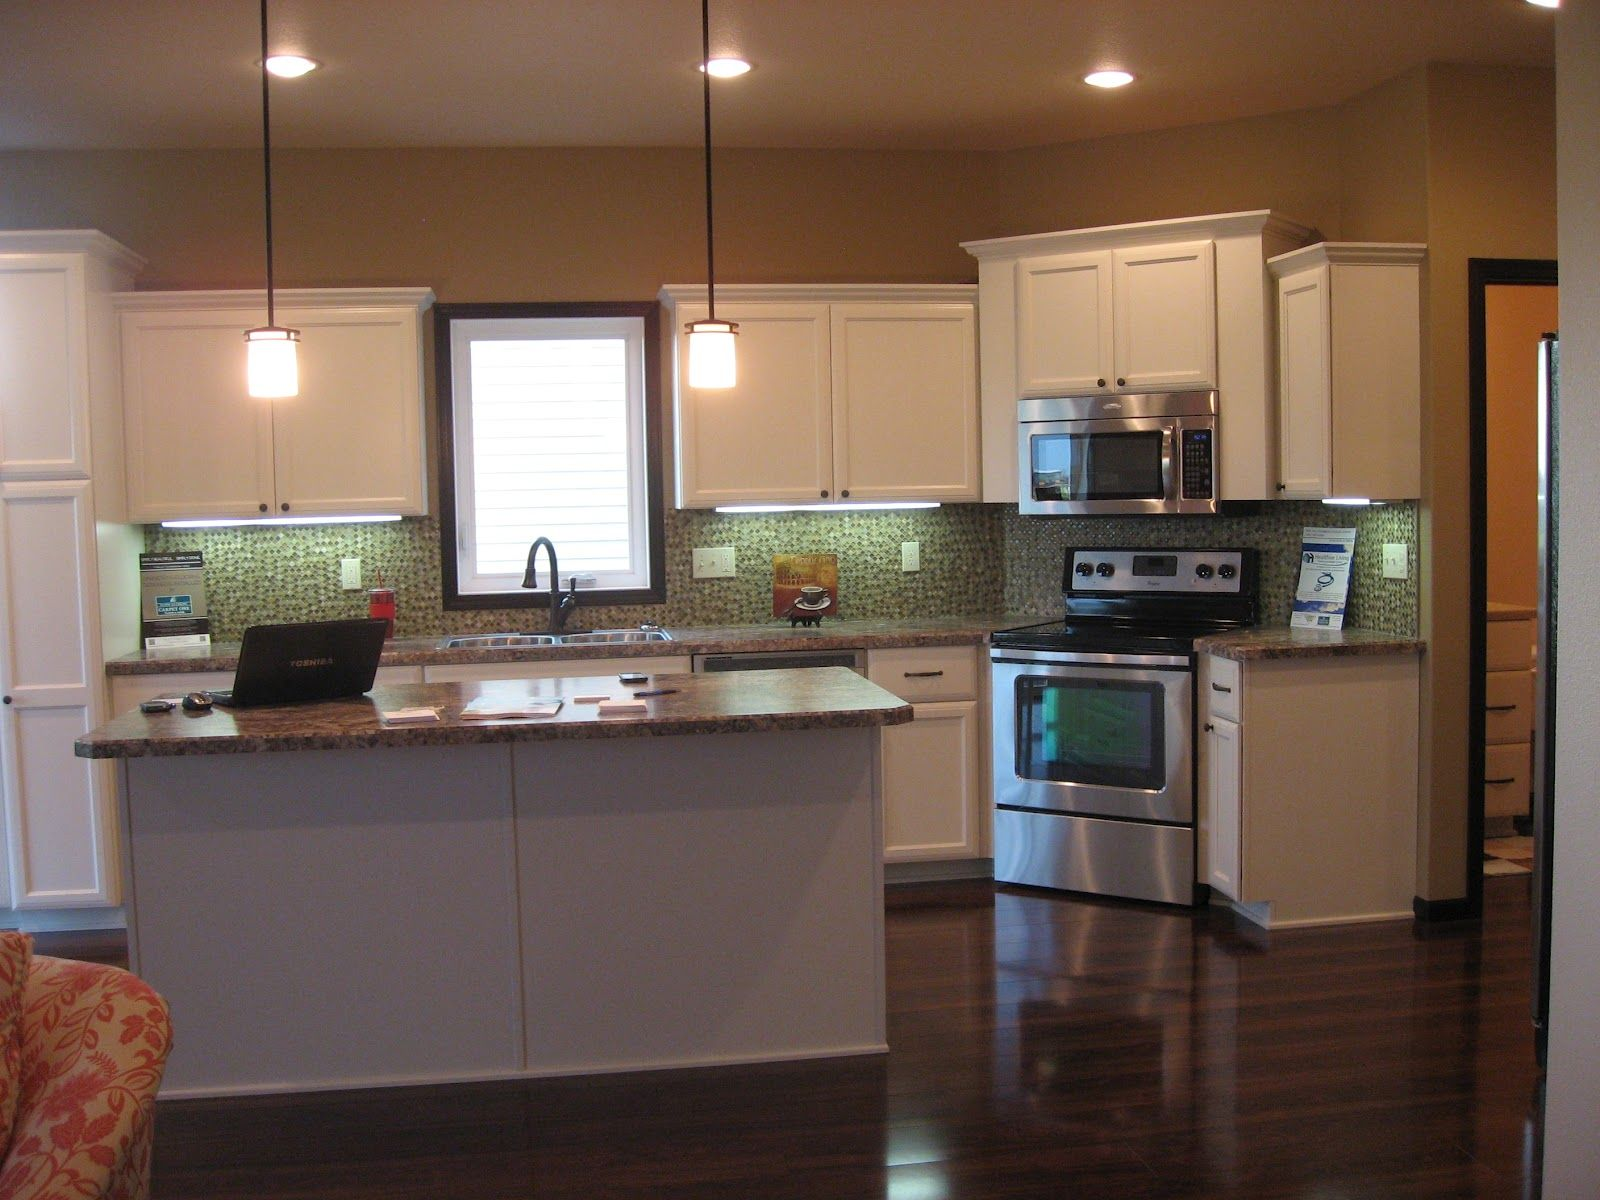 One Wall Kitchen With Island With Stove In The Corner With